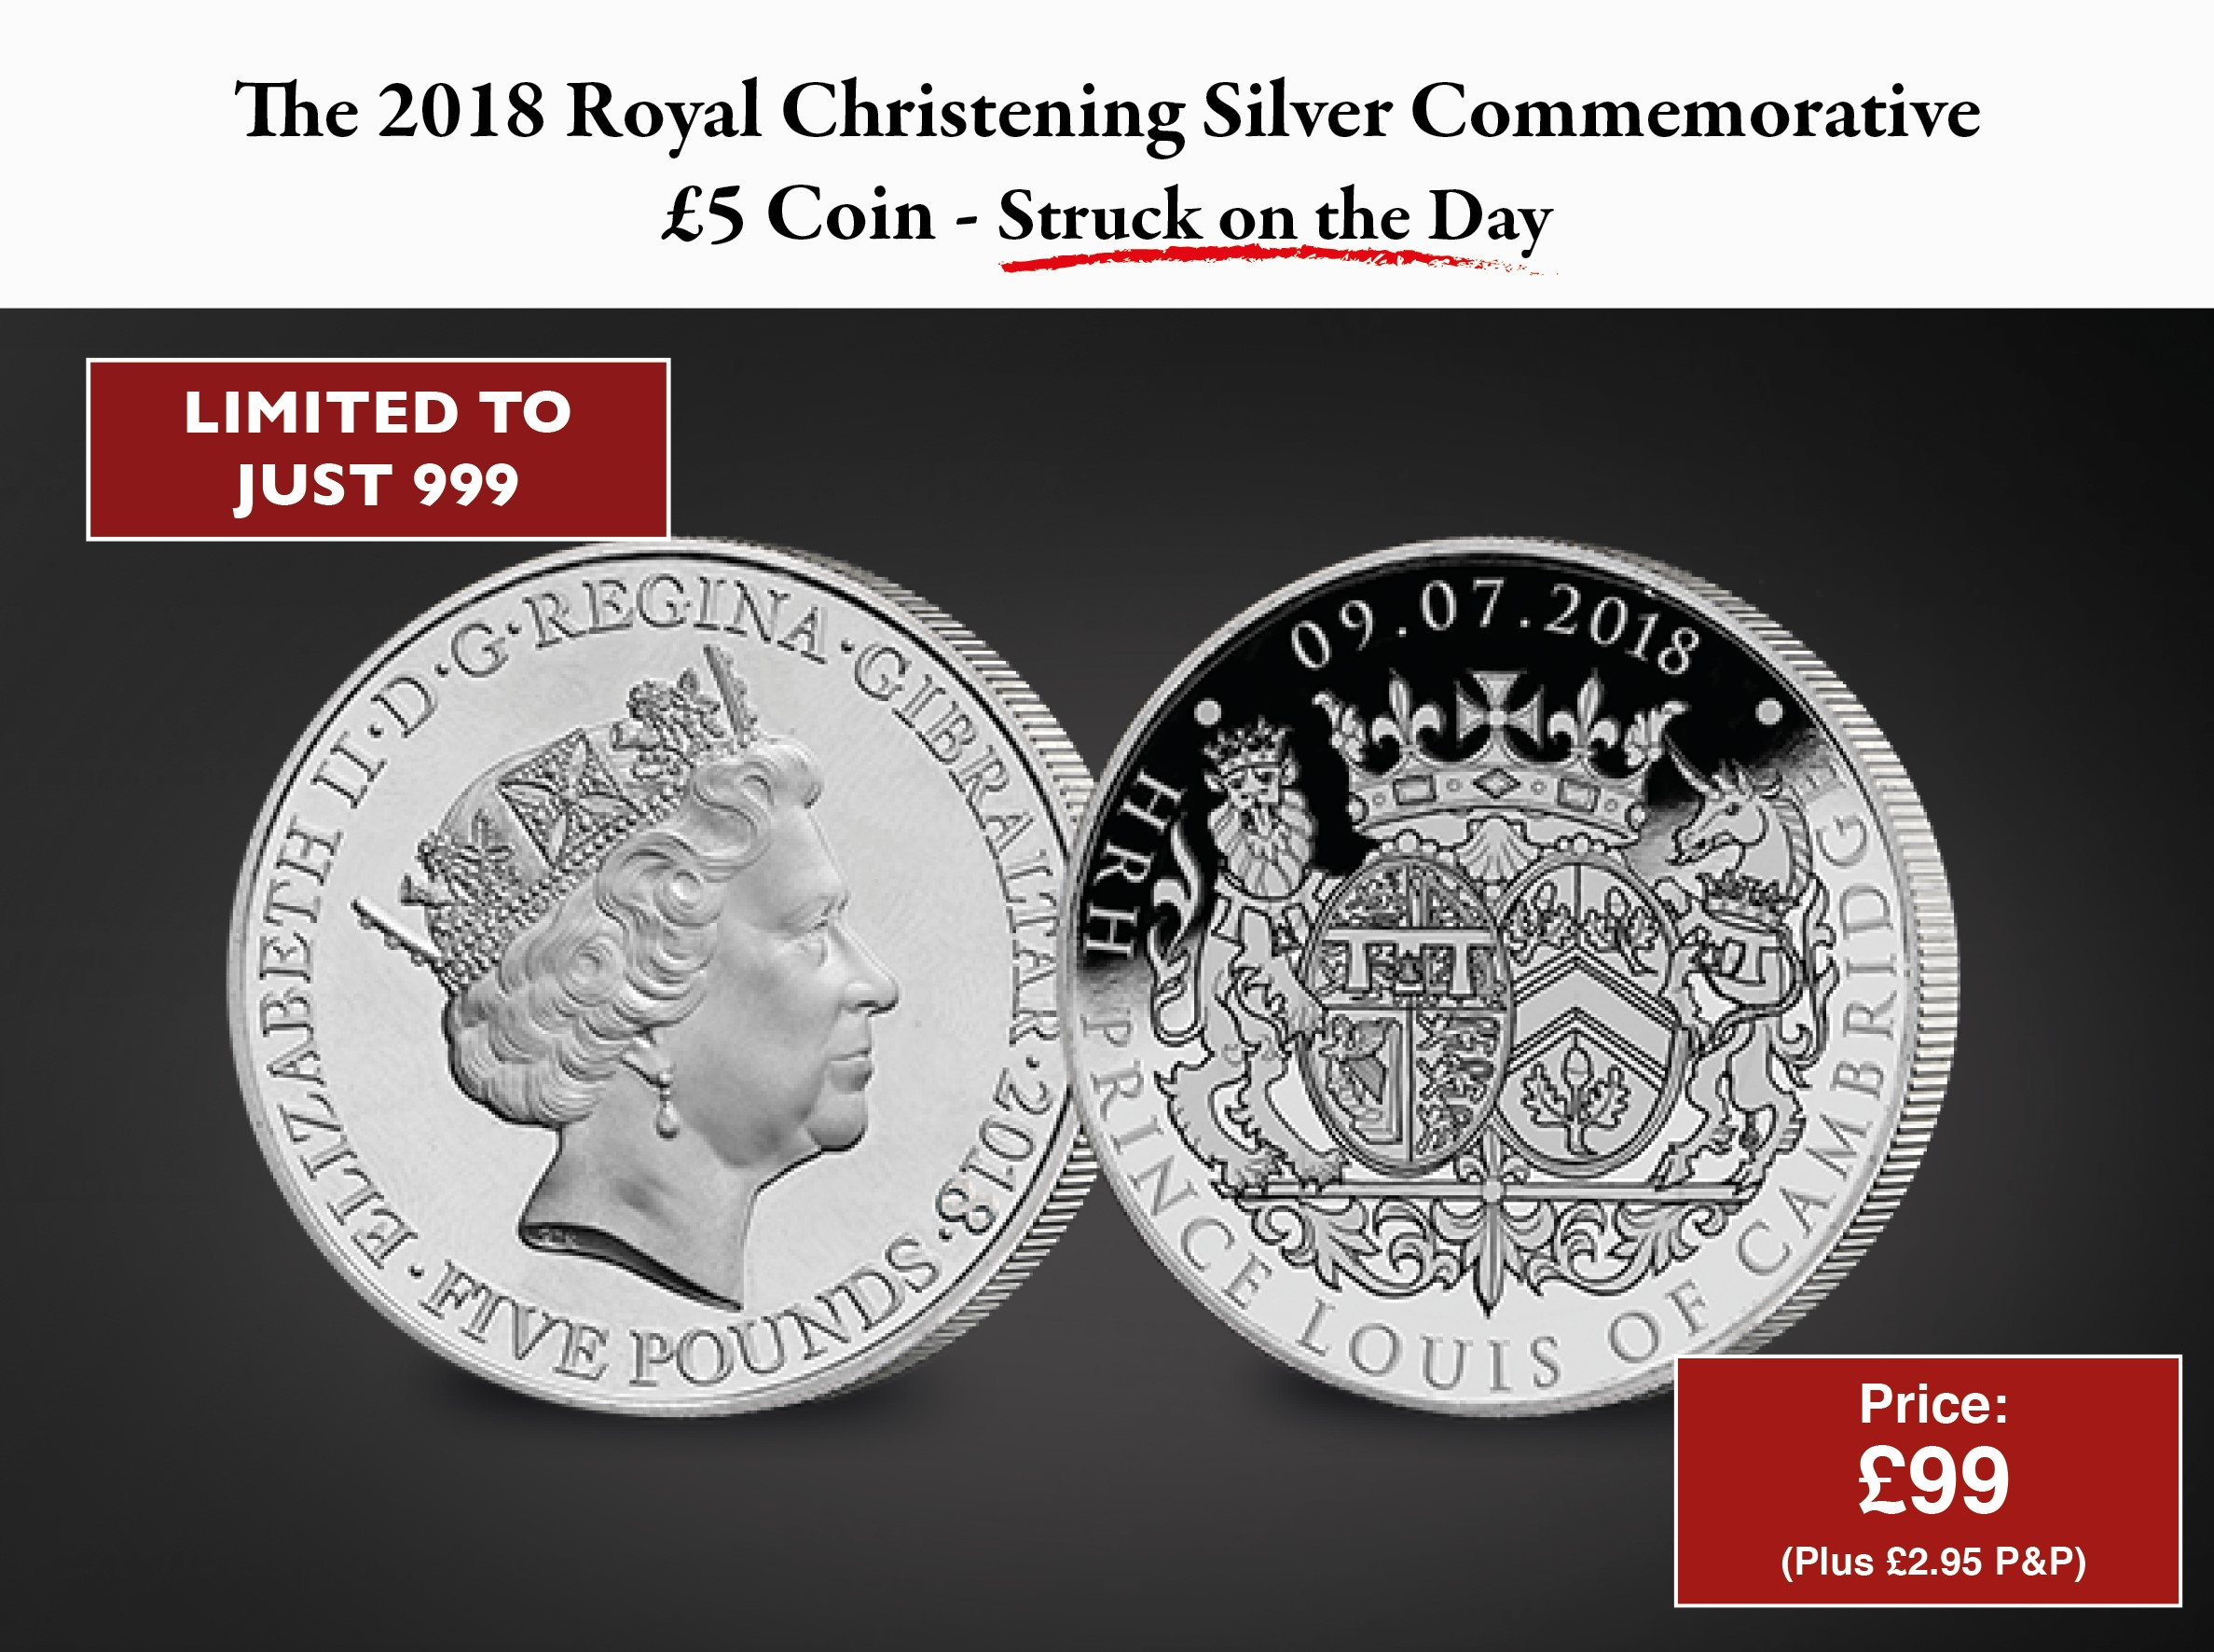 The Christening of HRH Prince Louis of Cambridge £5 Coin